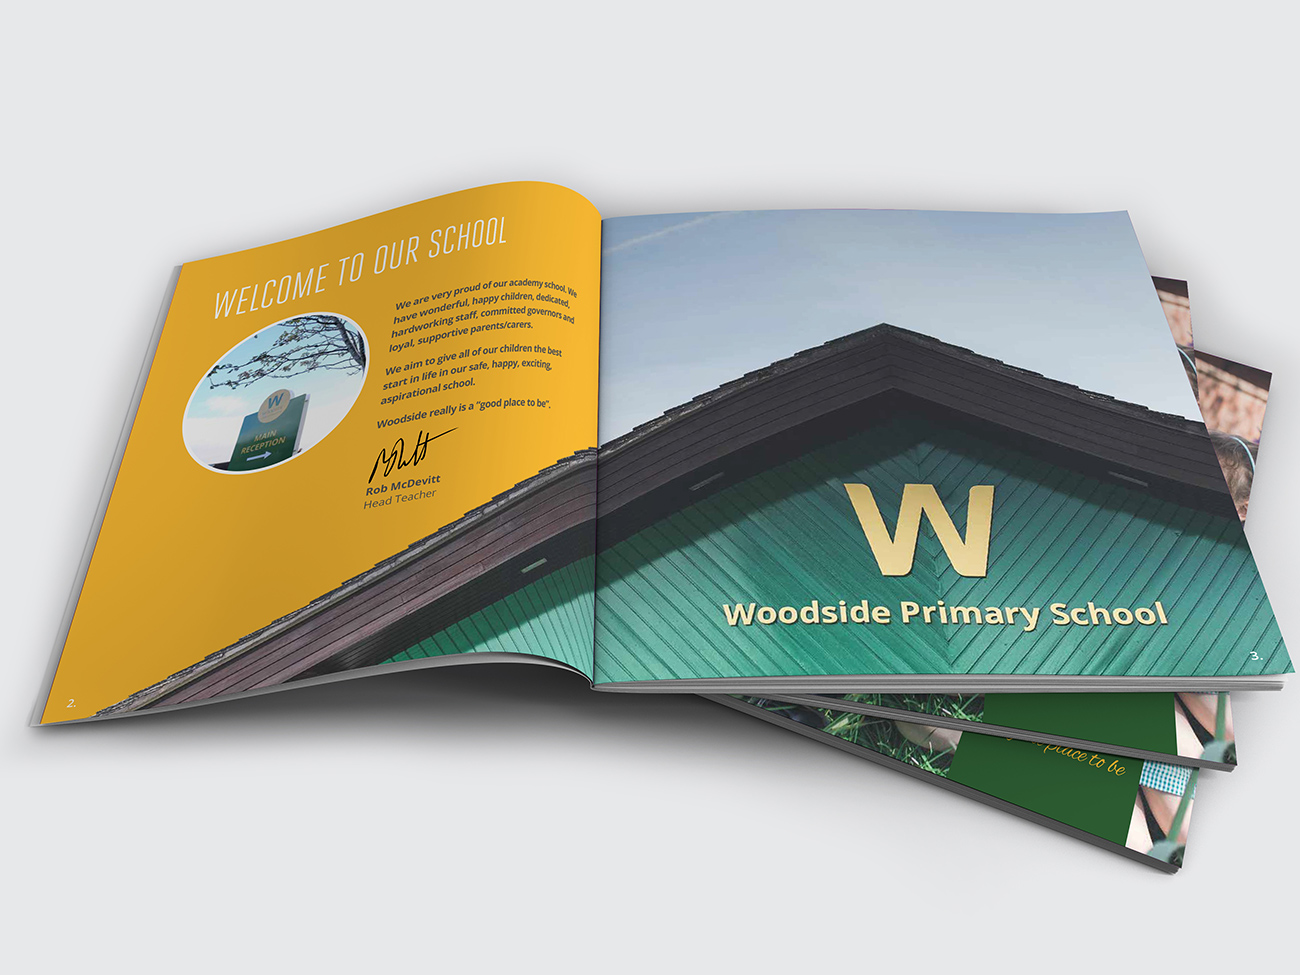 Woodside Primary School Marketing